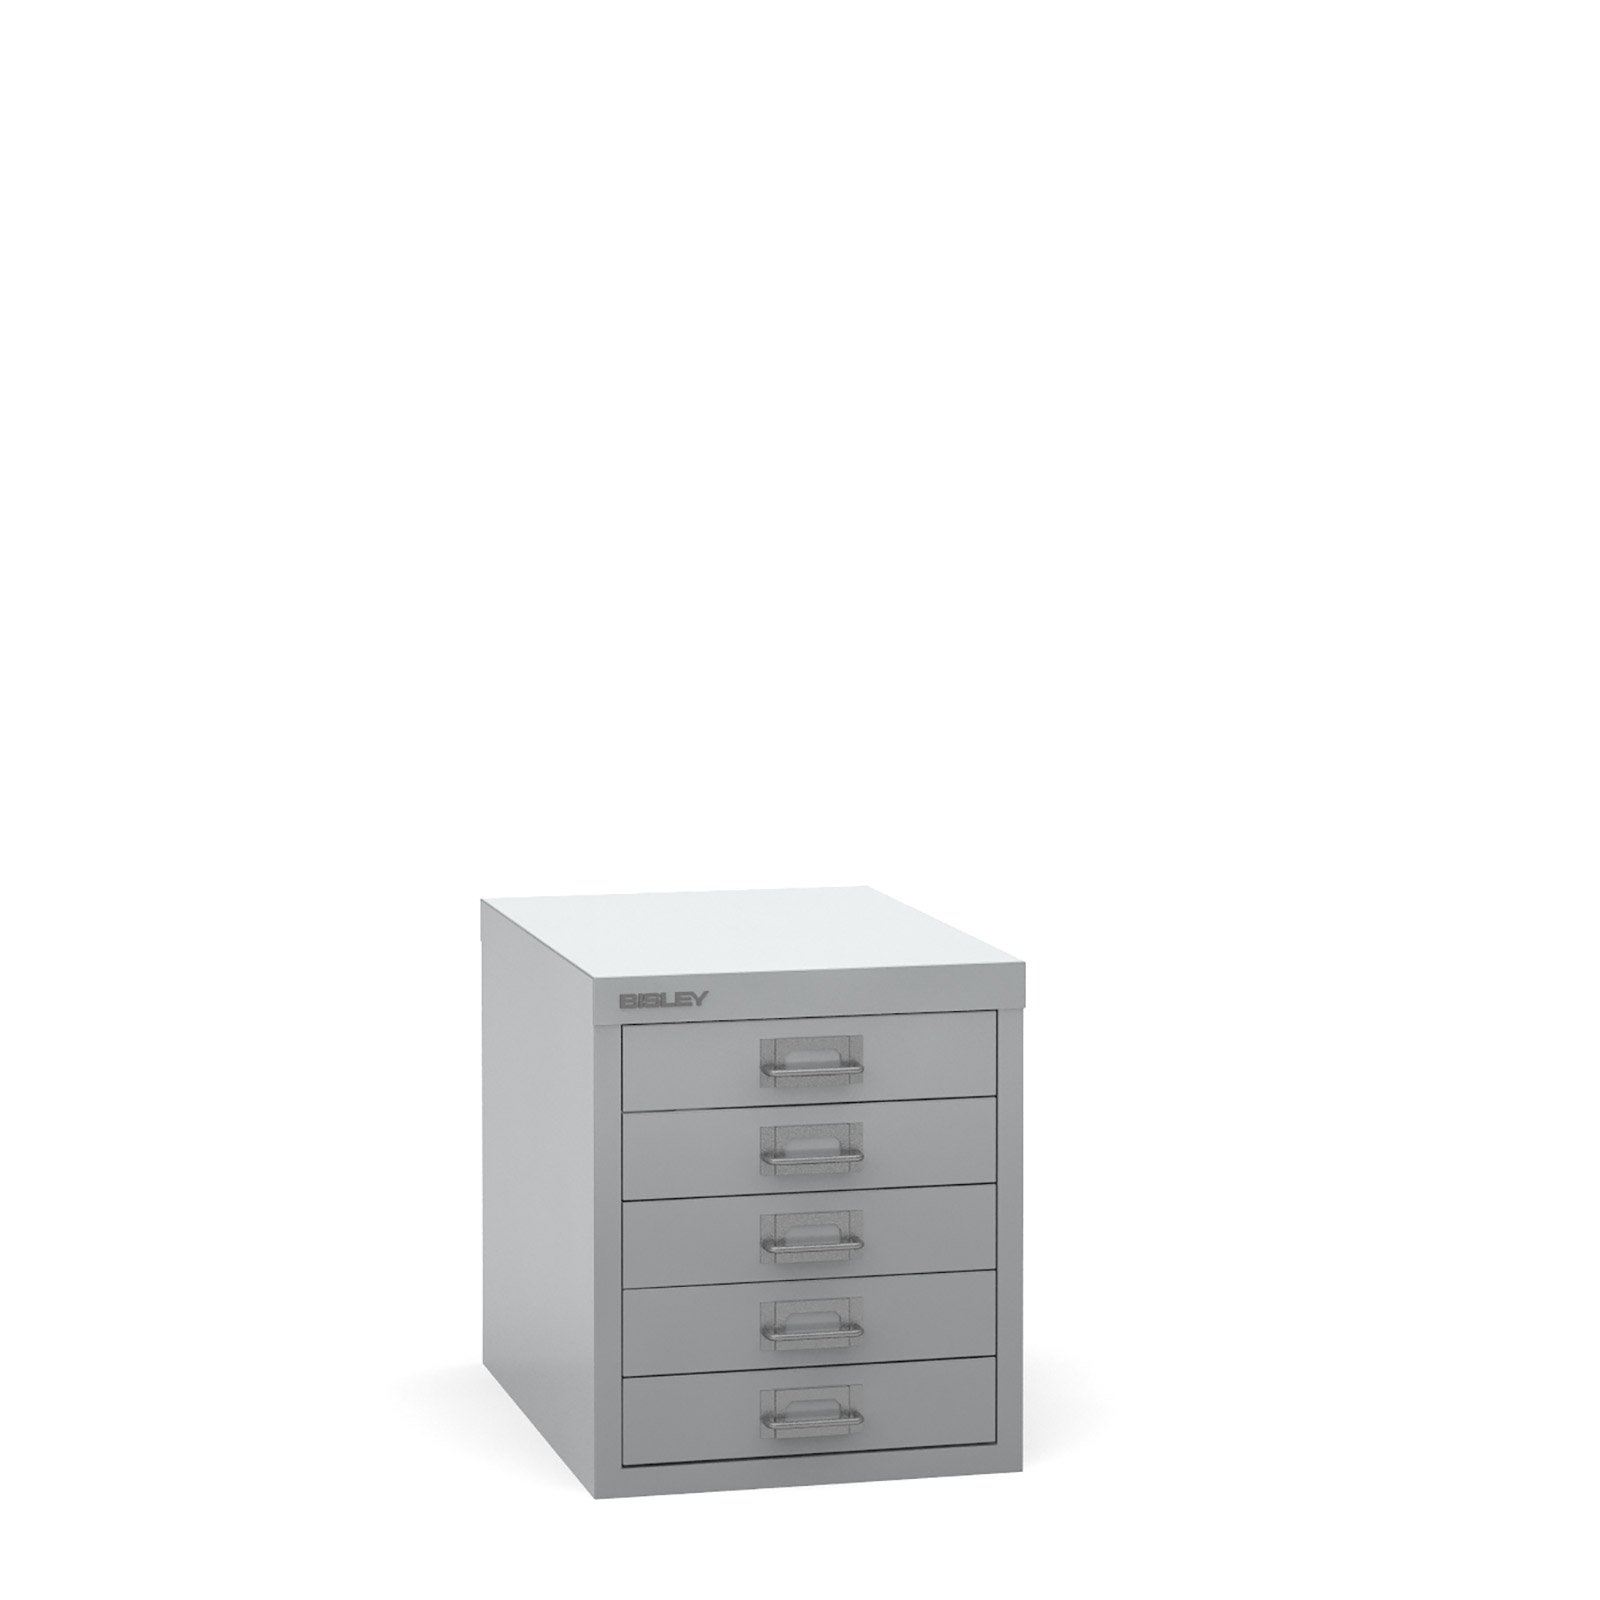 Bisley Multi-drawer, 5 drawer Silver